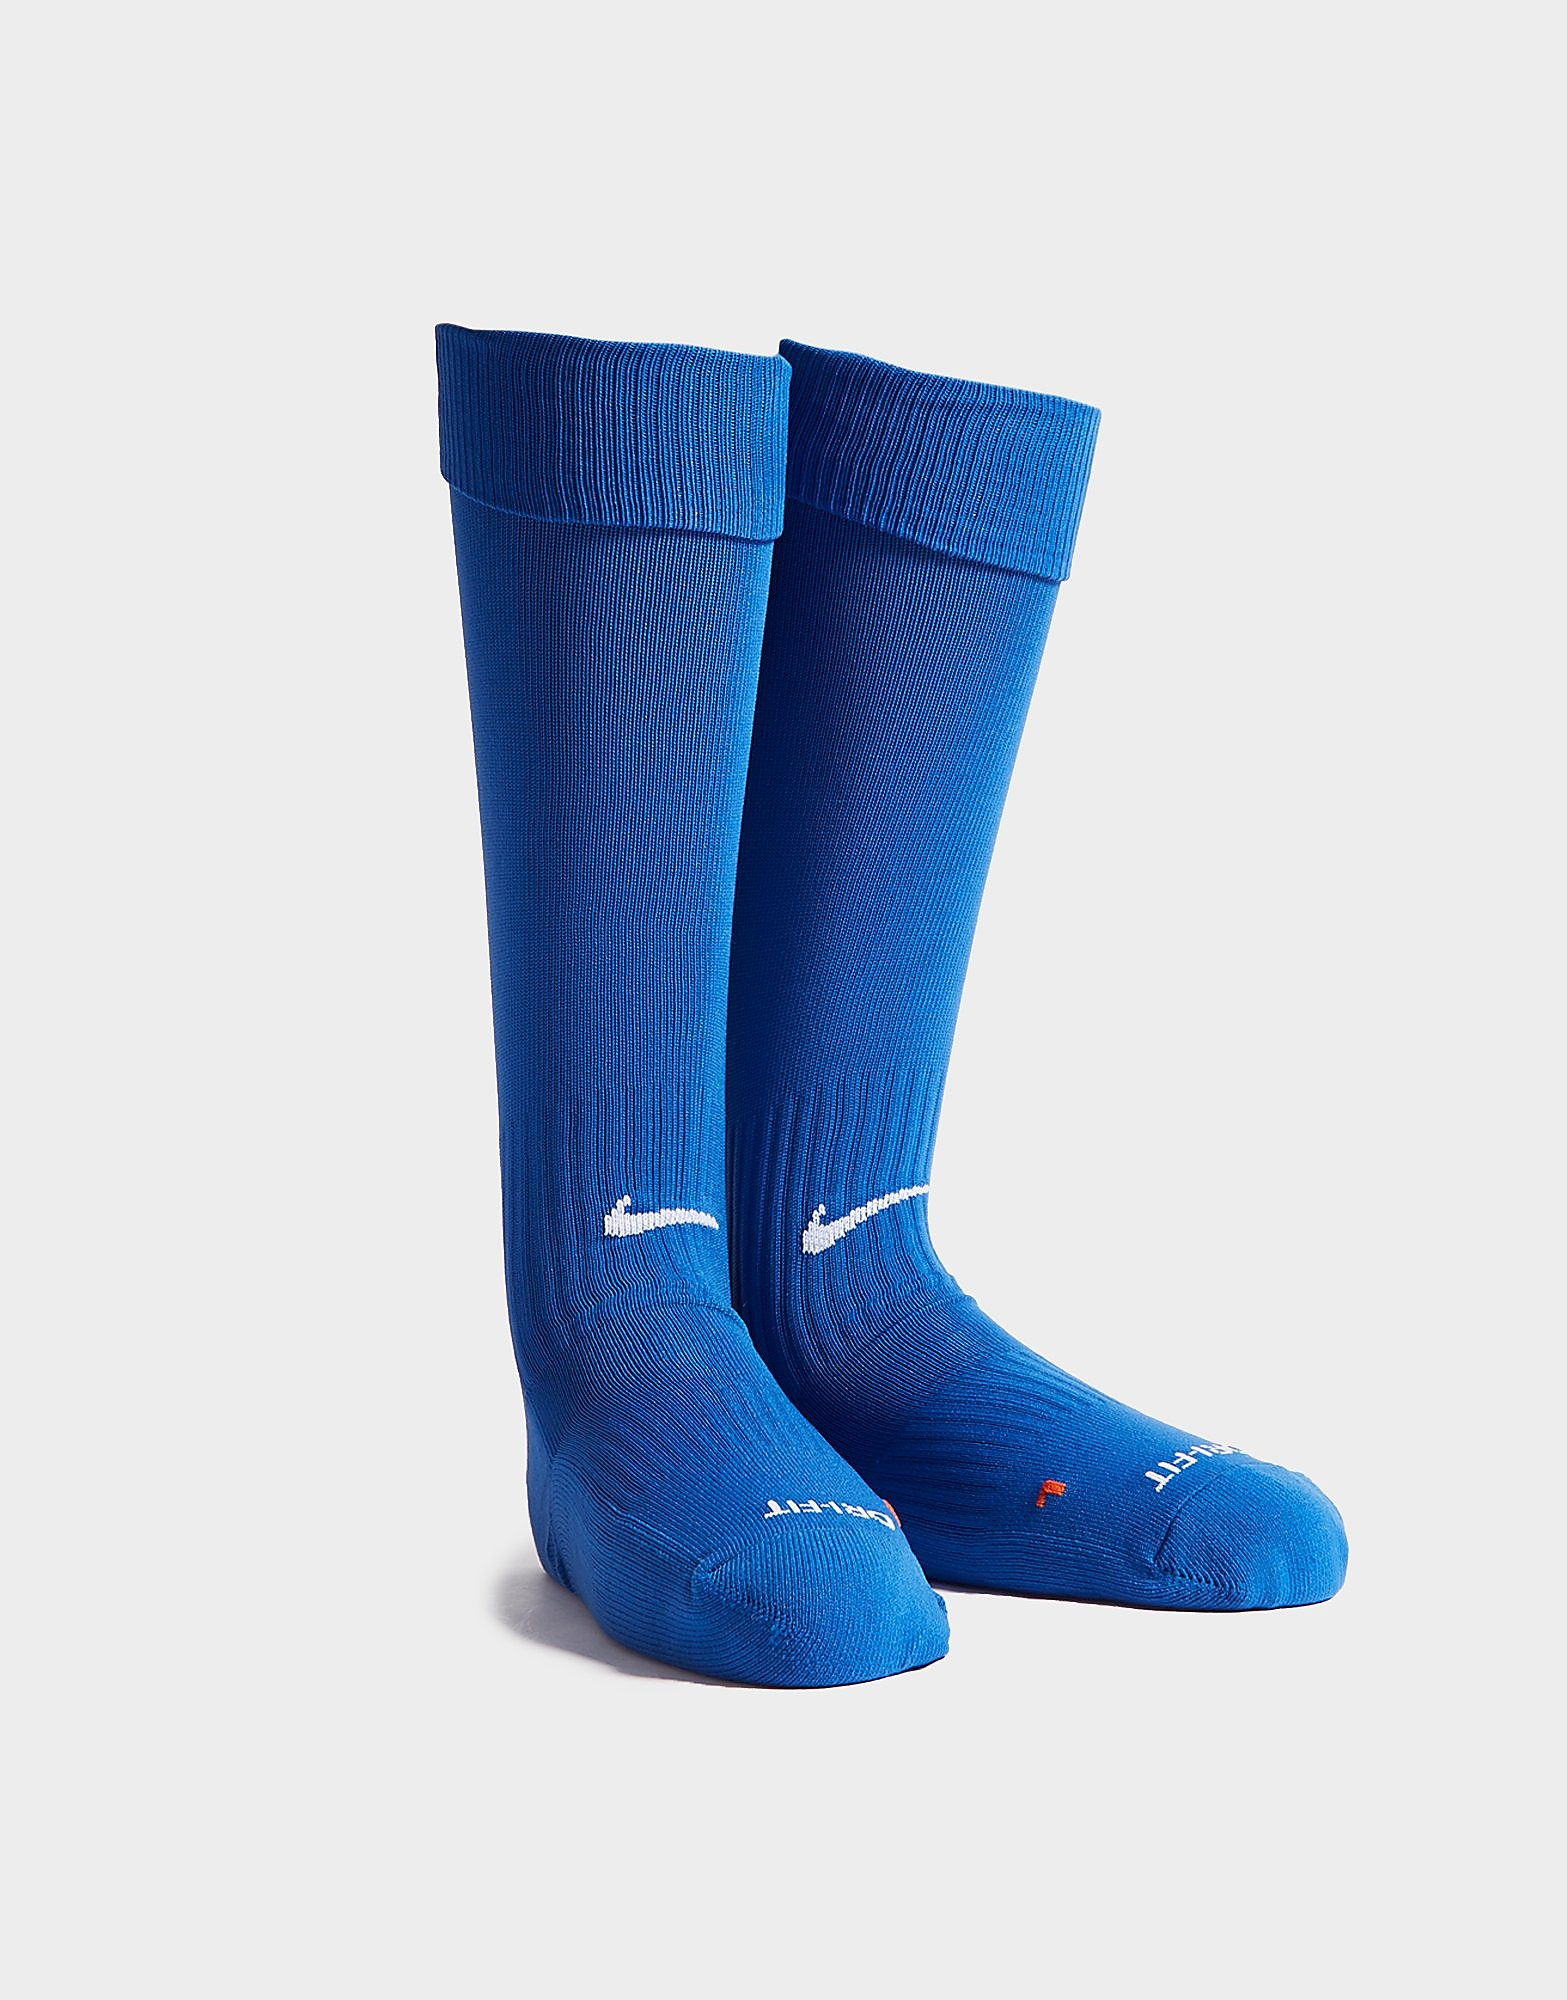 Nike Classic Football Socks